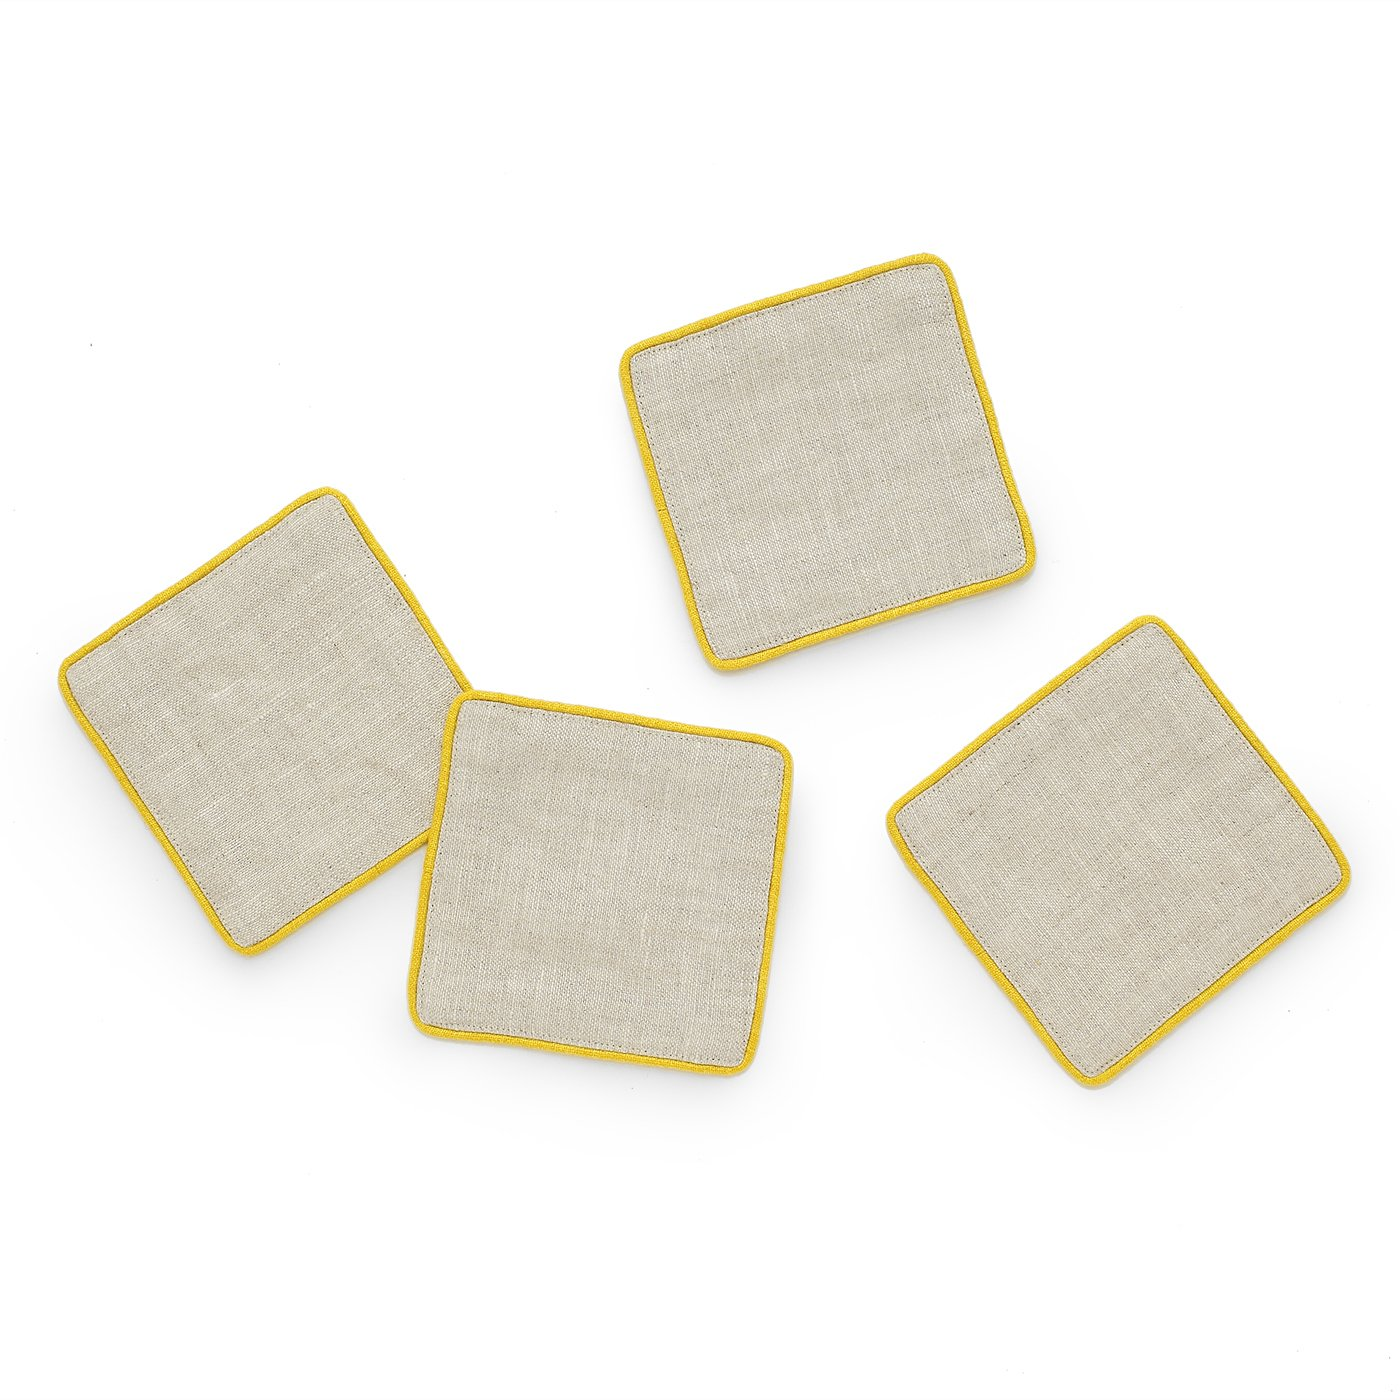 (10cm x 10cm, Yellow) - Solino Home 100% Pure Linen Coasters, Set of 4 Coaster Set With Cord Piping for Bar, Kitchen Coasters for Drinks, 10cm x 10cm Yellow Coasters 4 x 4 Inch イエロー B07F8VGC8R